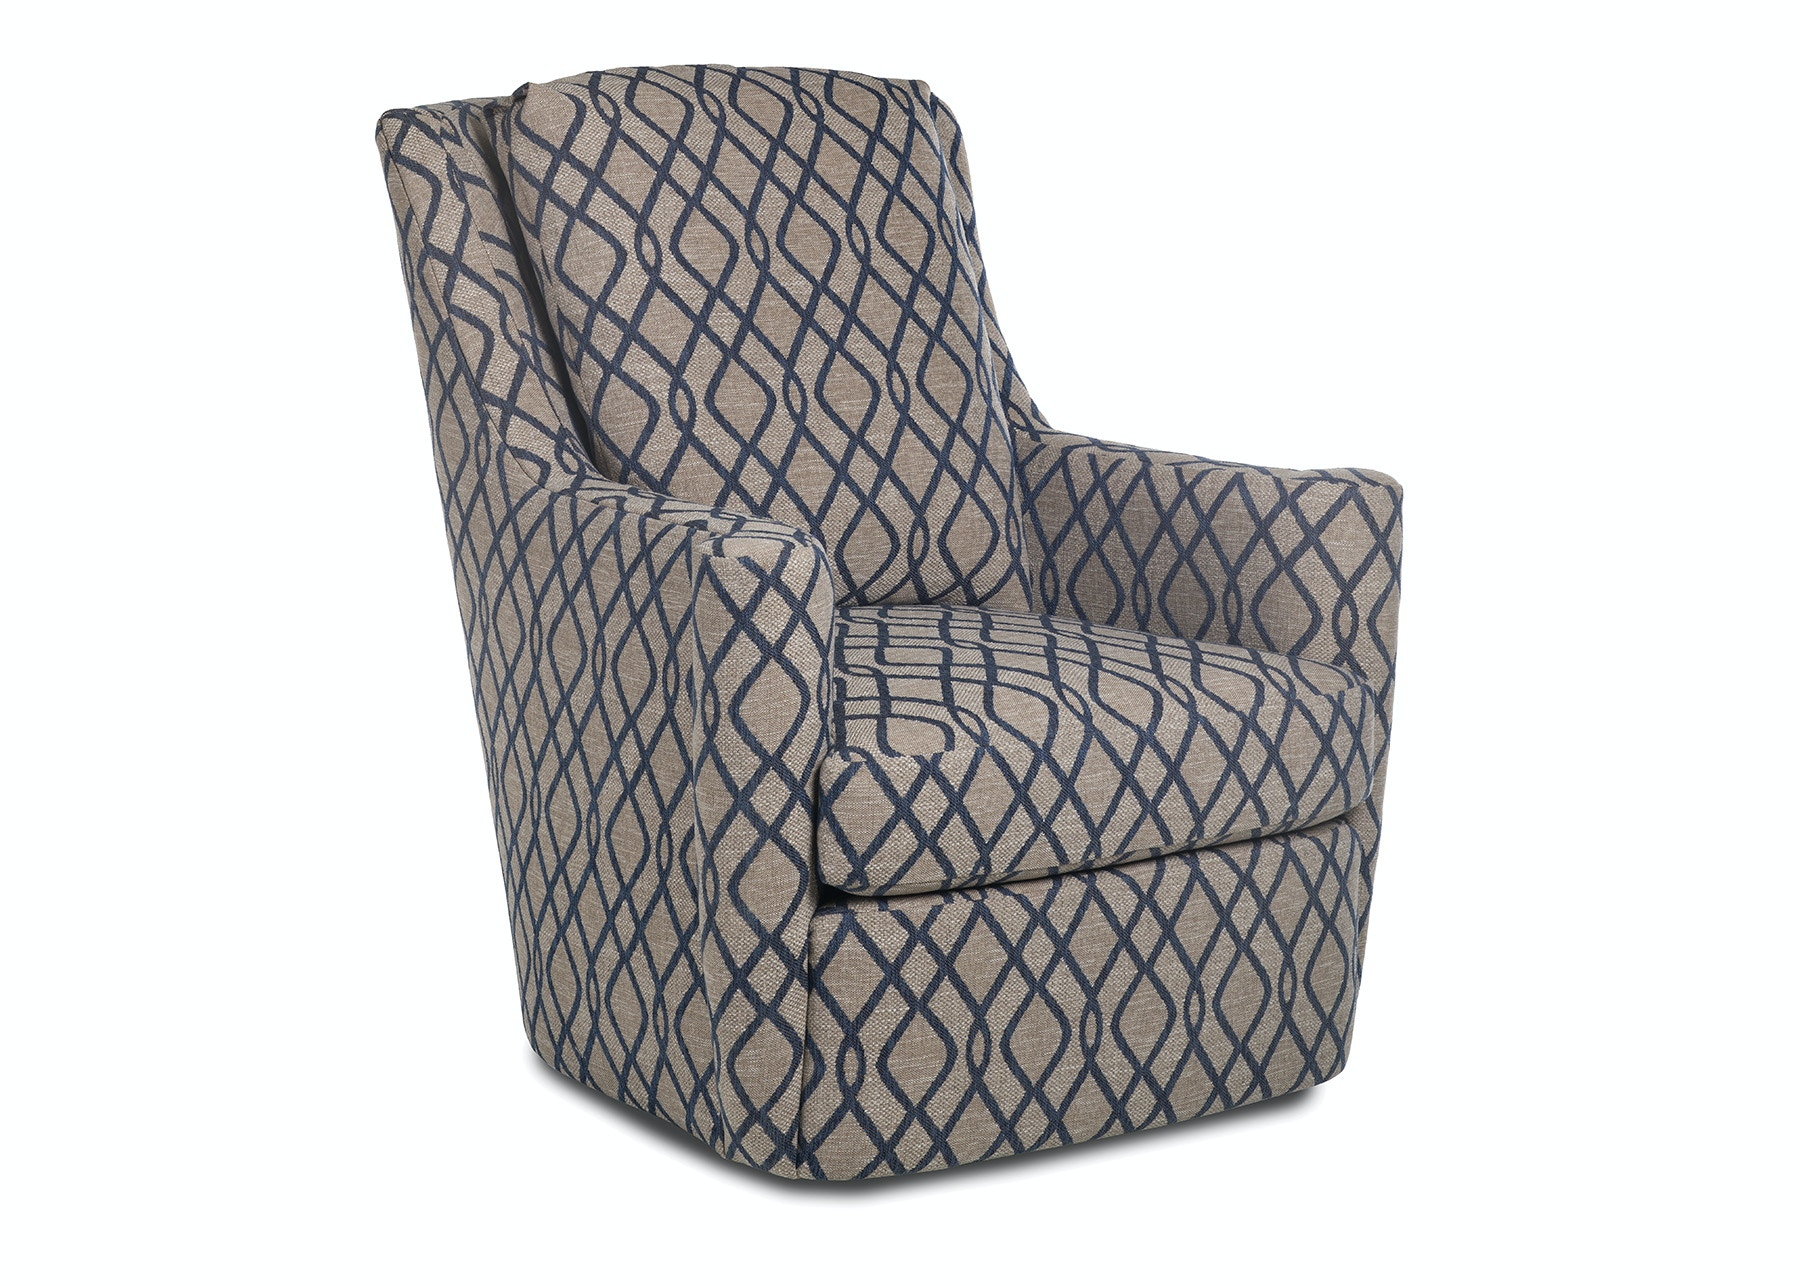 Exceptionnel Arbor Home Journal High Back Swivel Chair 226 S From Walter E. Smithe  Furniture